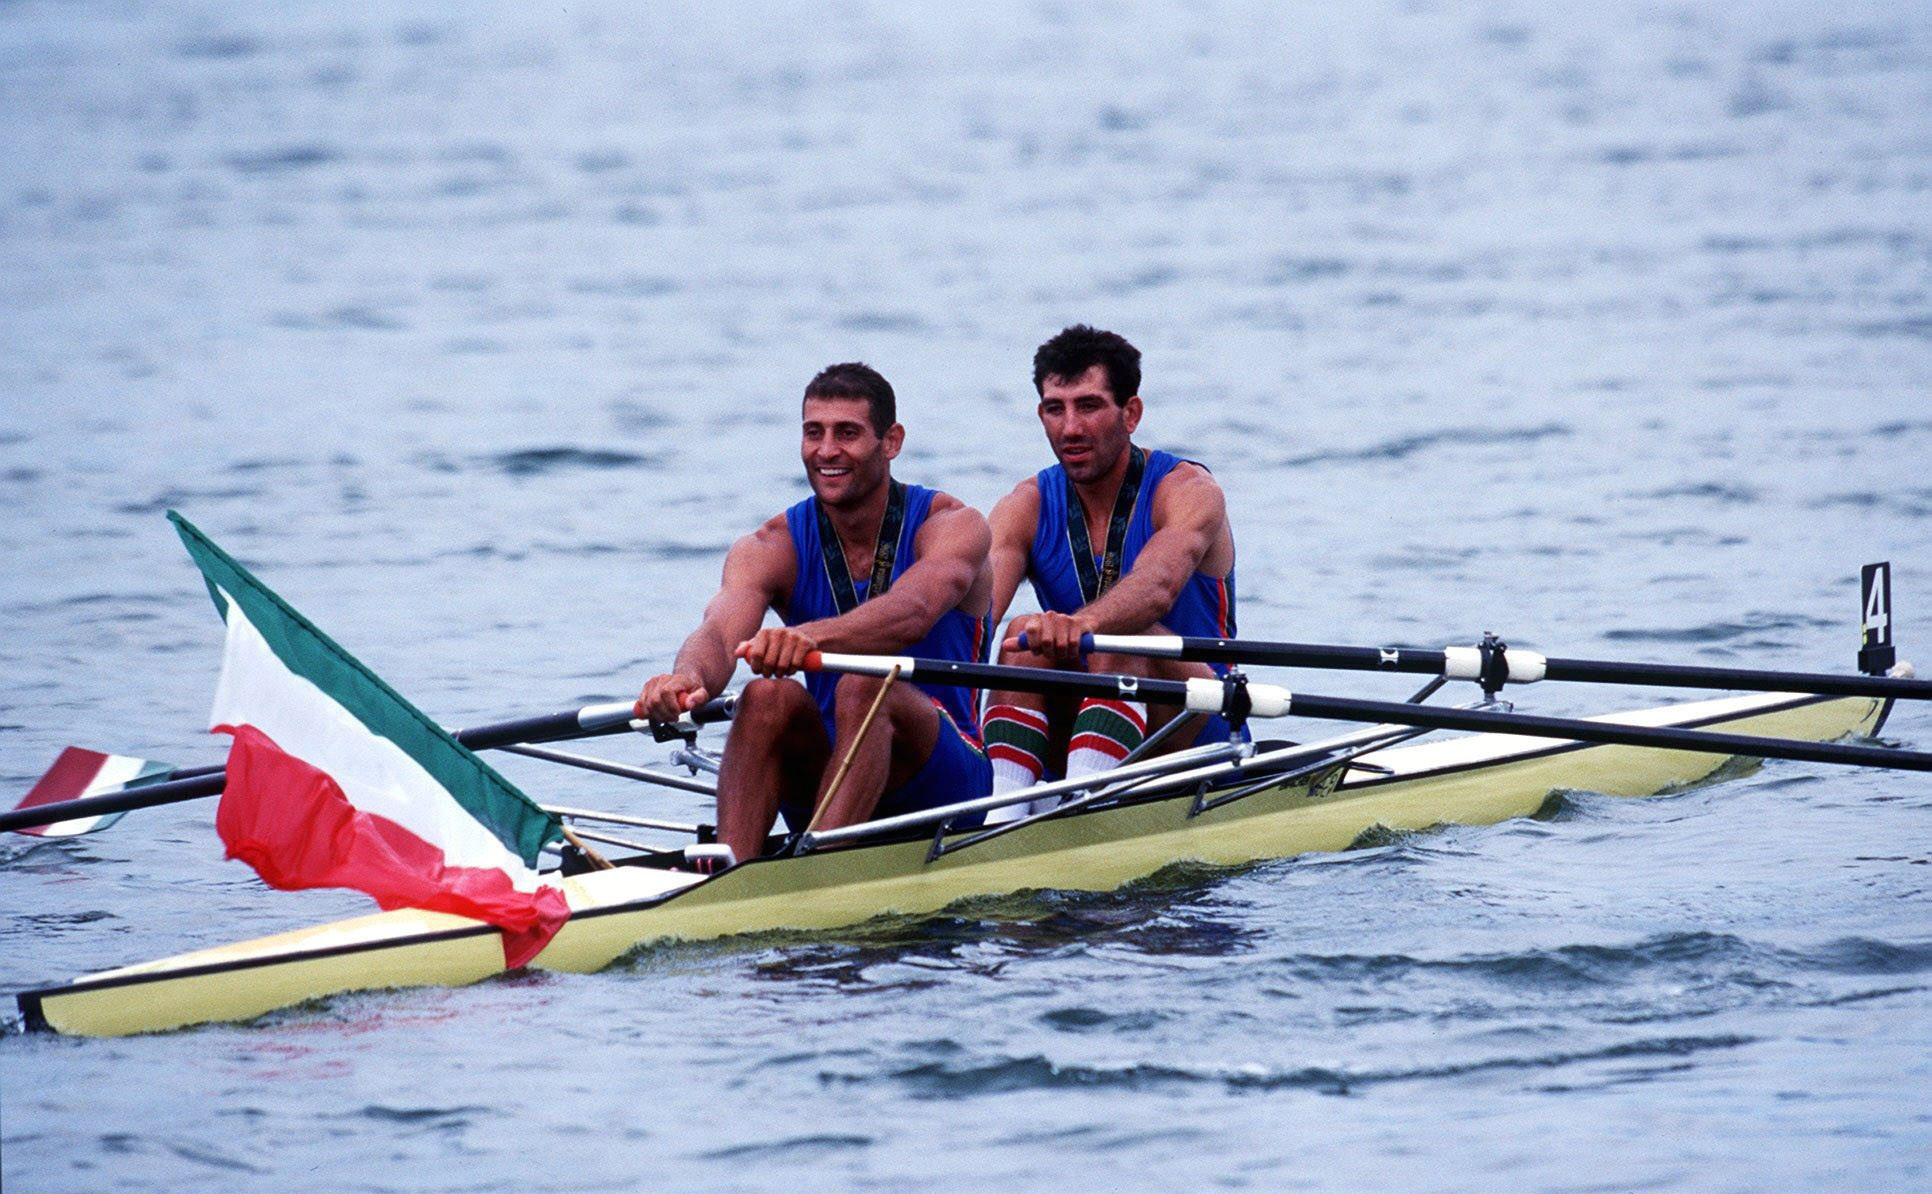 Italy's double Olympic rowing champion Davide Tizzano, left, will be the first Torchbearer of the Naples 2019 Summer Universiade Torch Relay when it is lit in Turin tomorrow © Getty Images